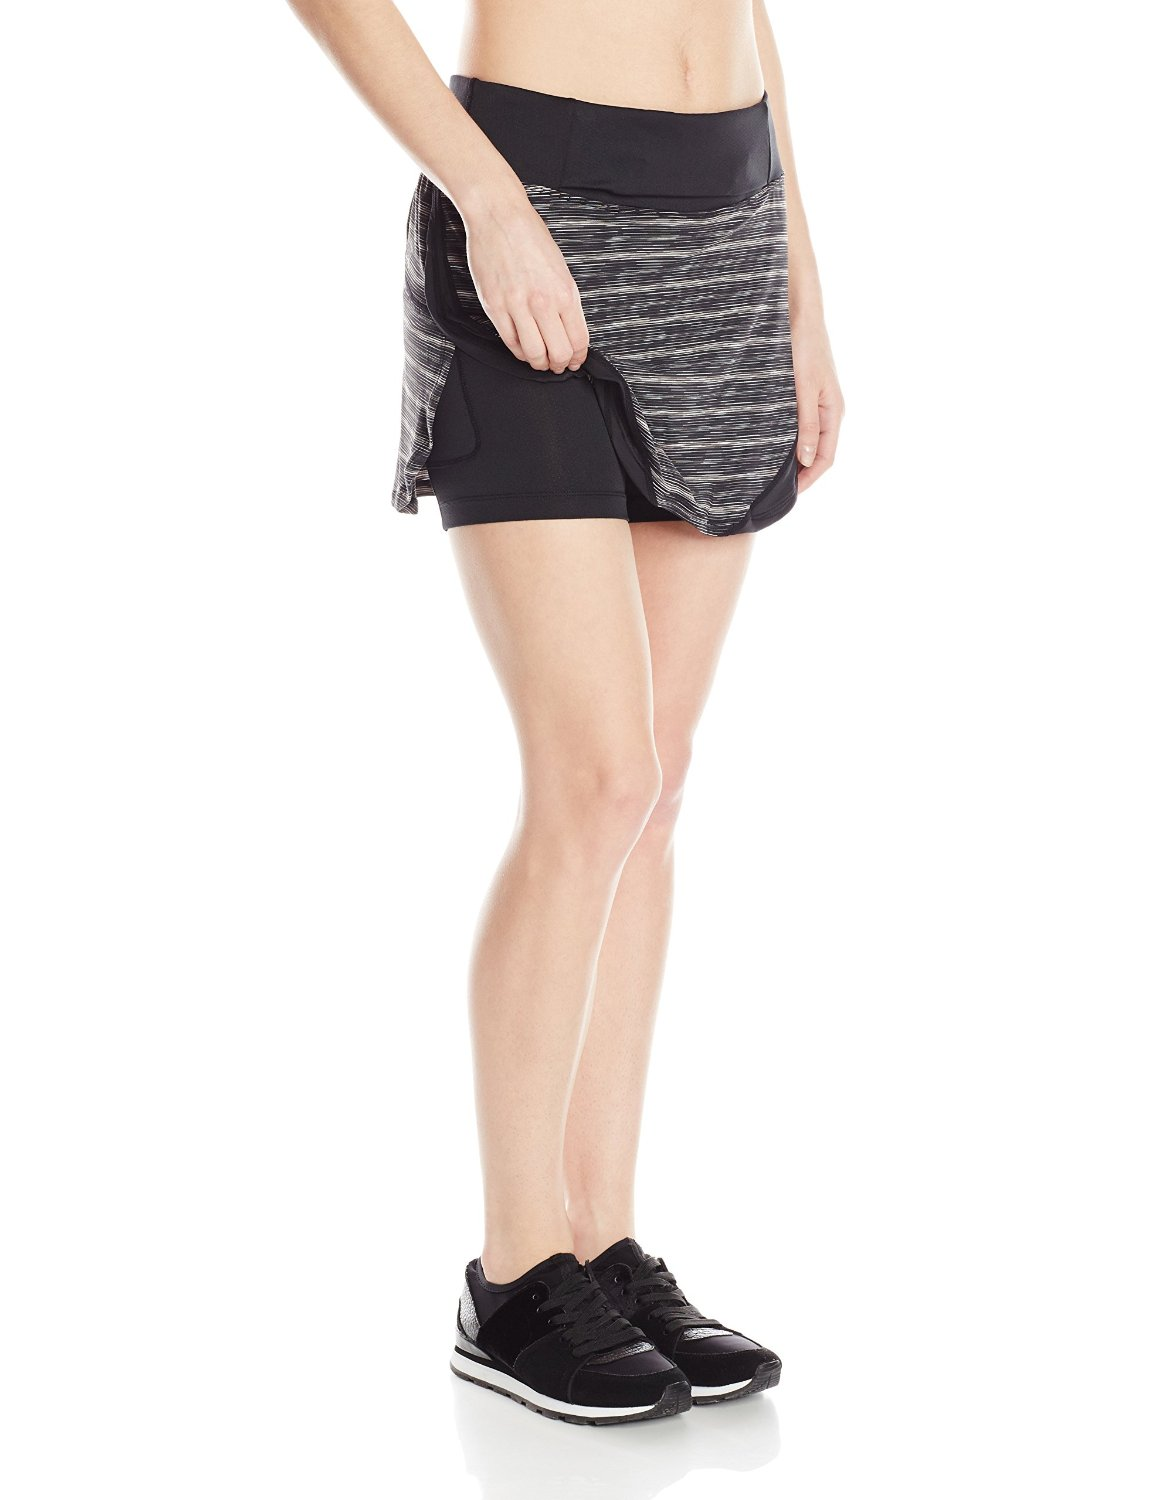 Skirt Sports Race Magnet Skirt with Shorties